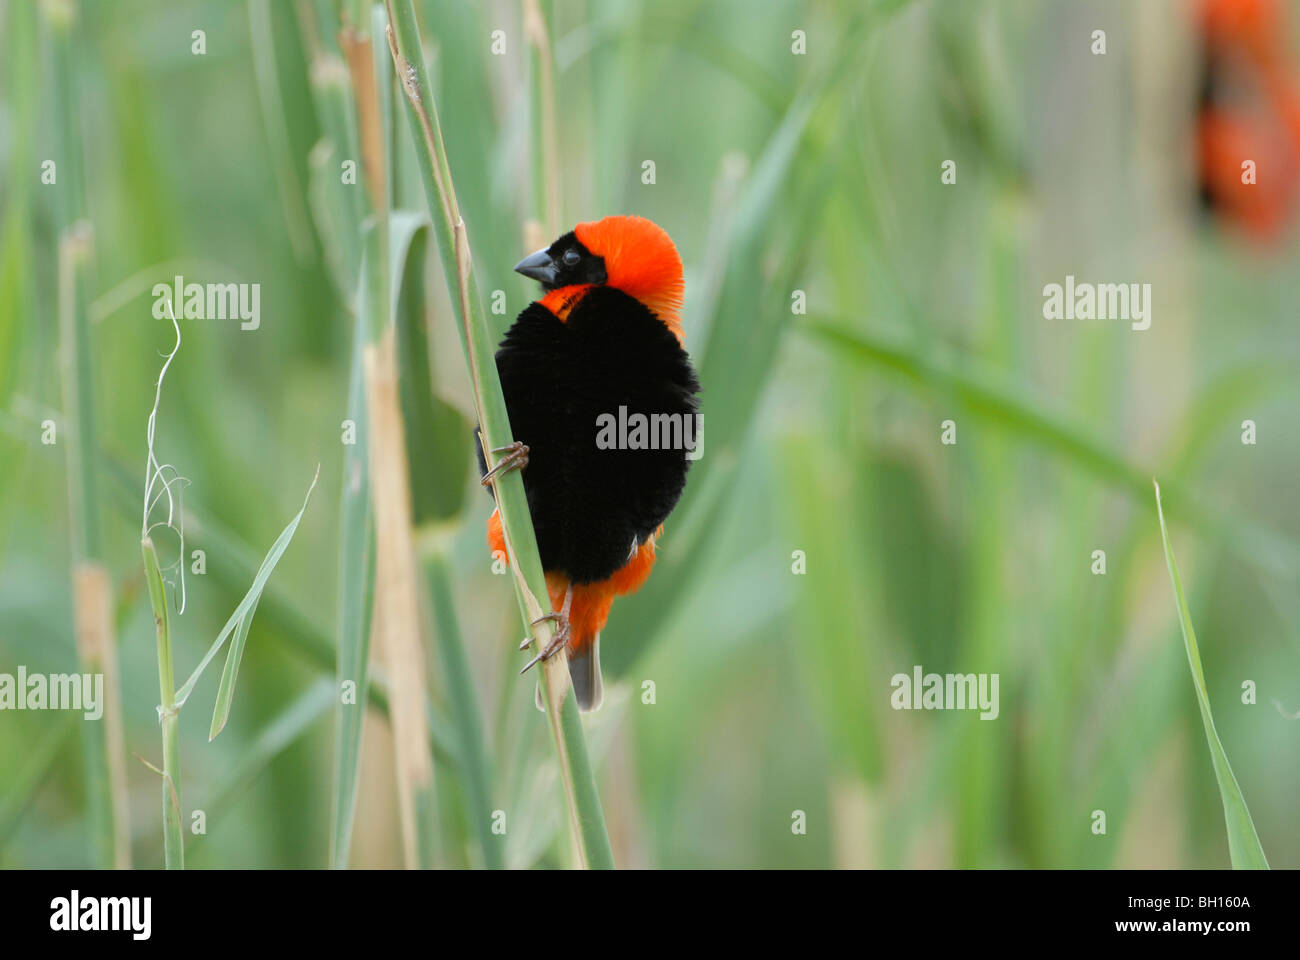 Male southern red bishop, Euplectes orix, showing off in reeds of wetland in Addo Elephant Park, South Africa - Stock Image